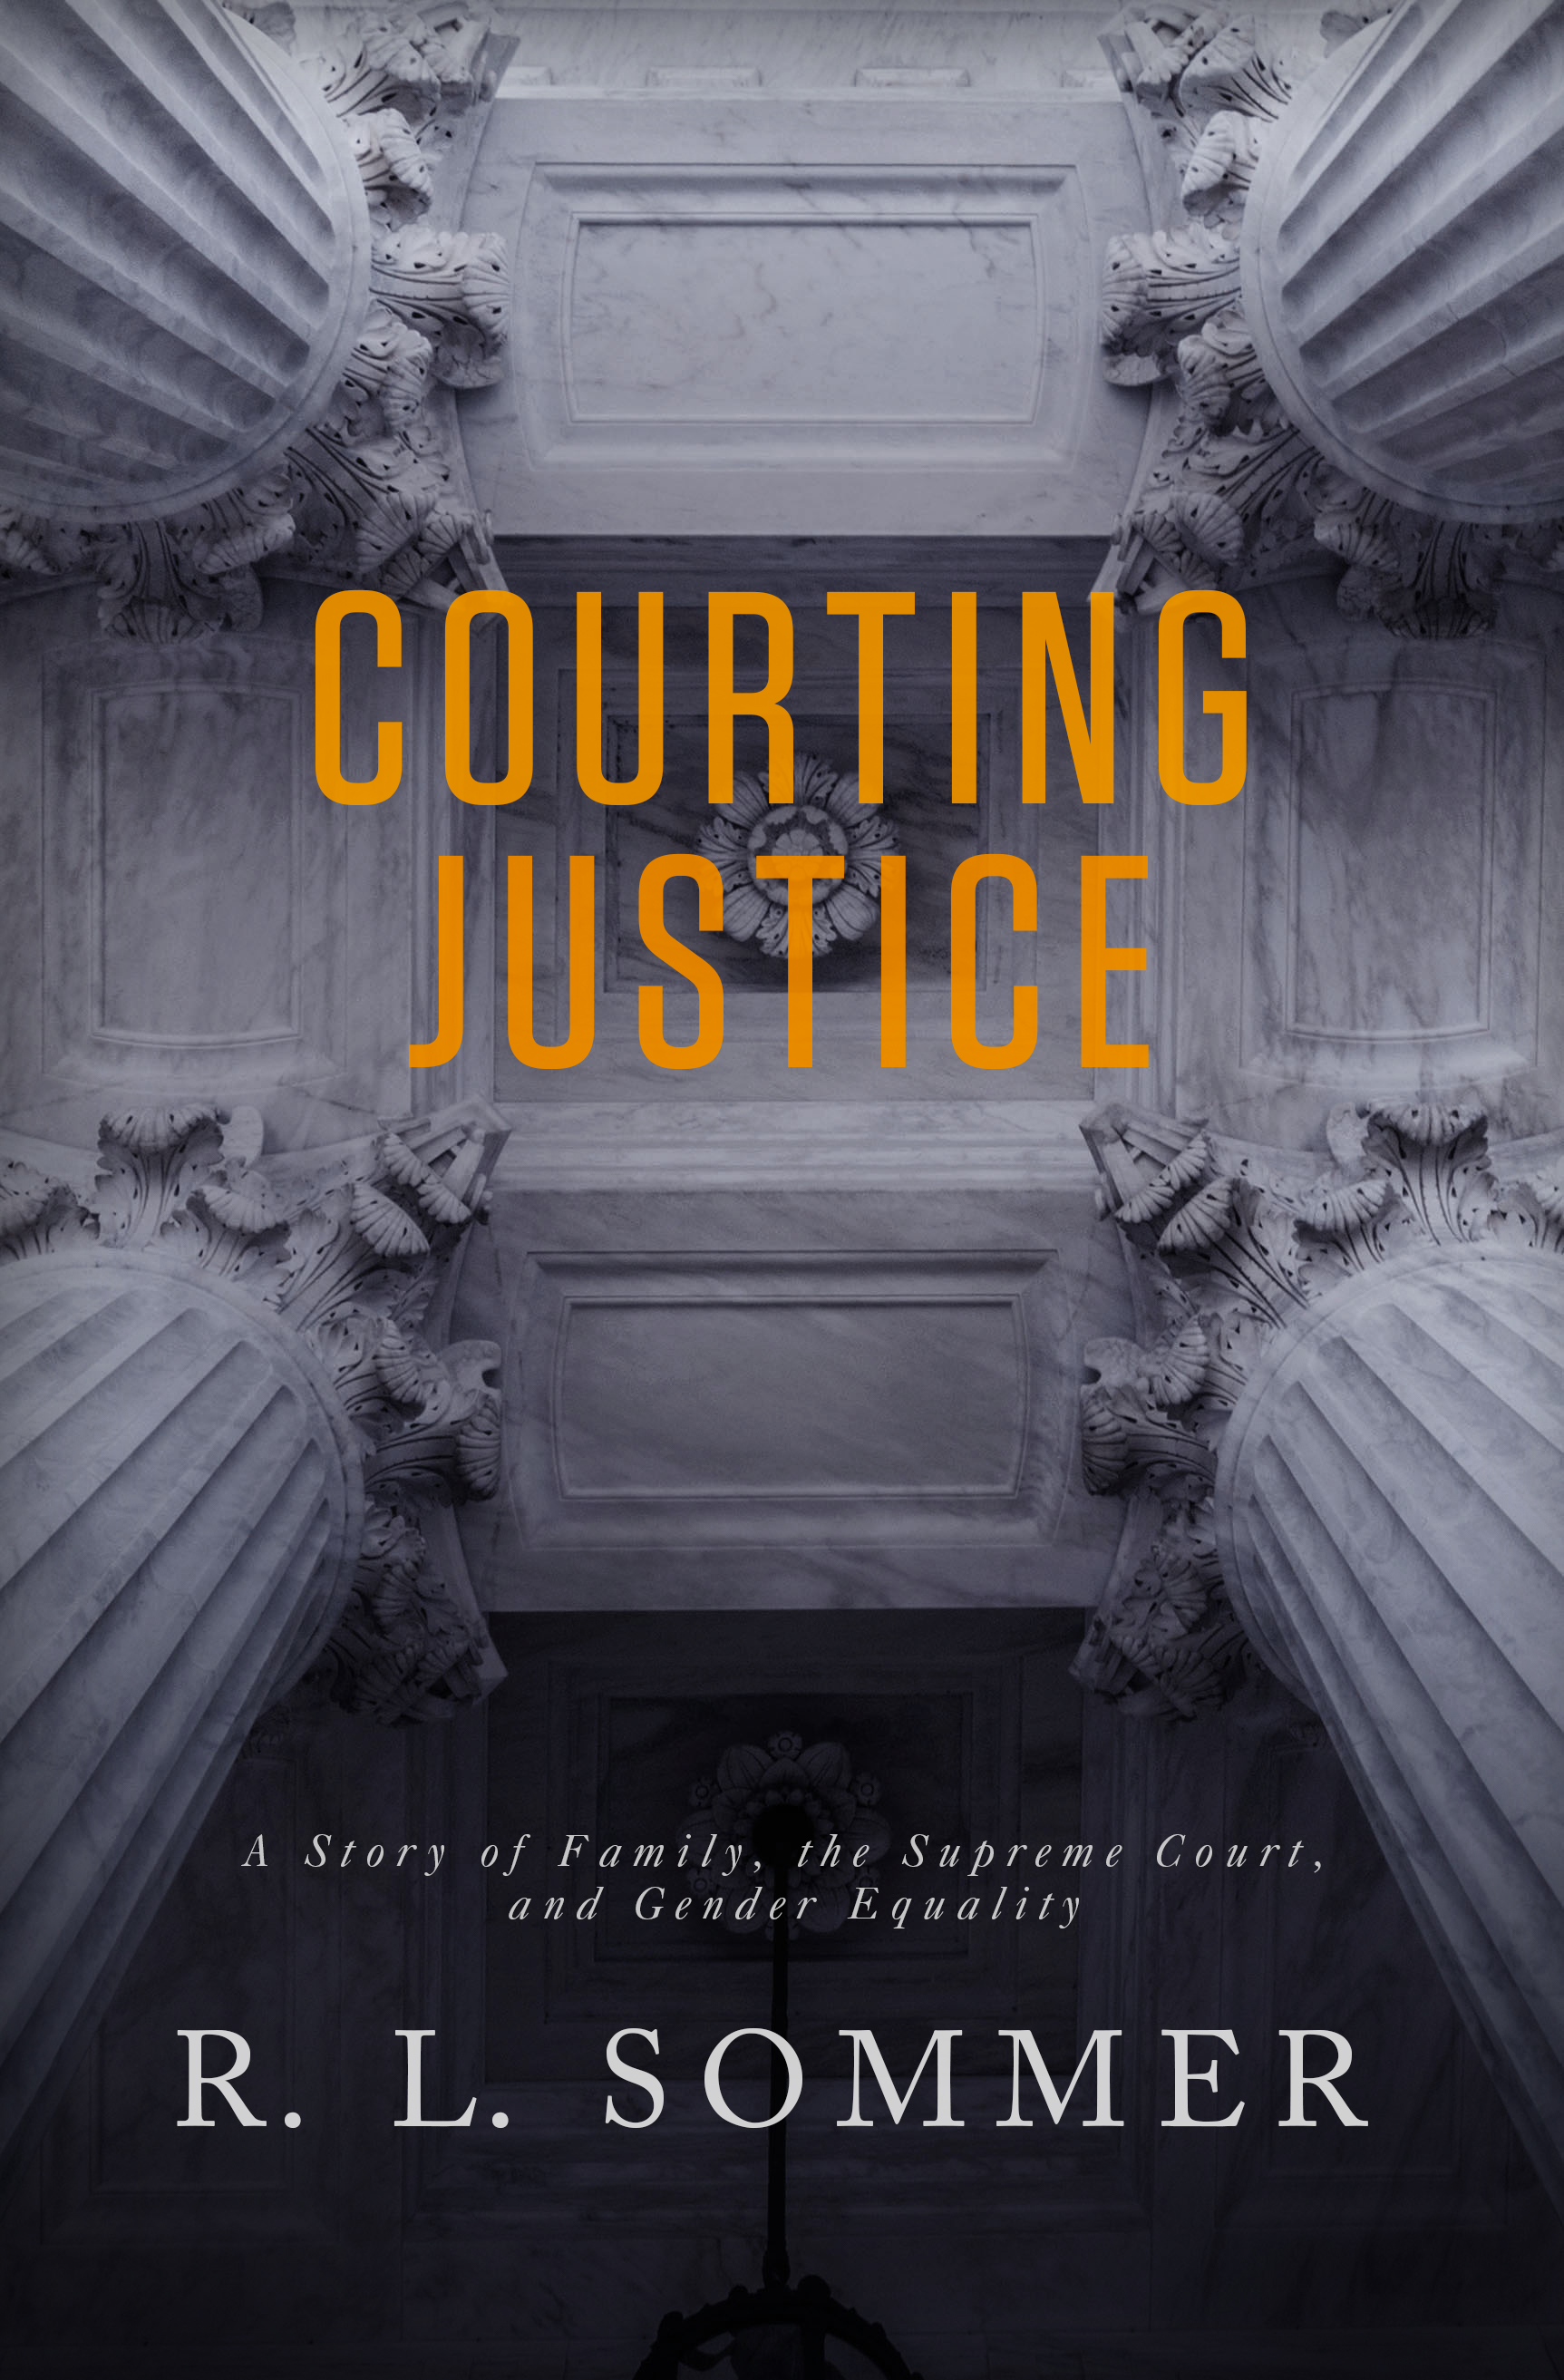 Courting Justice (Recusal #2)